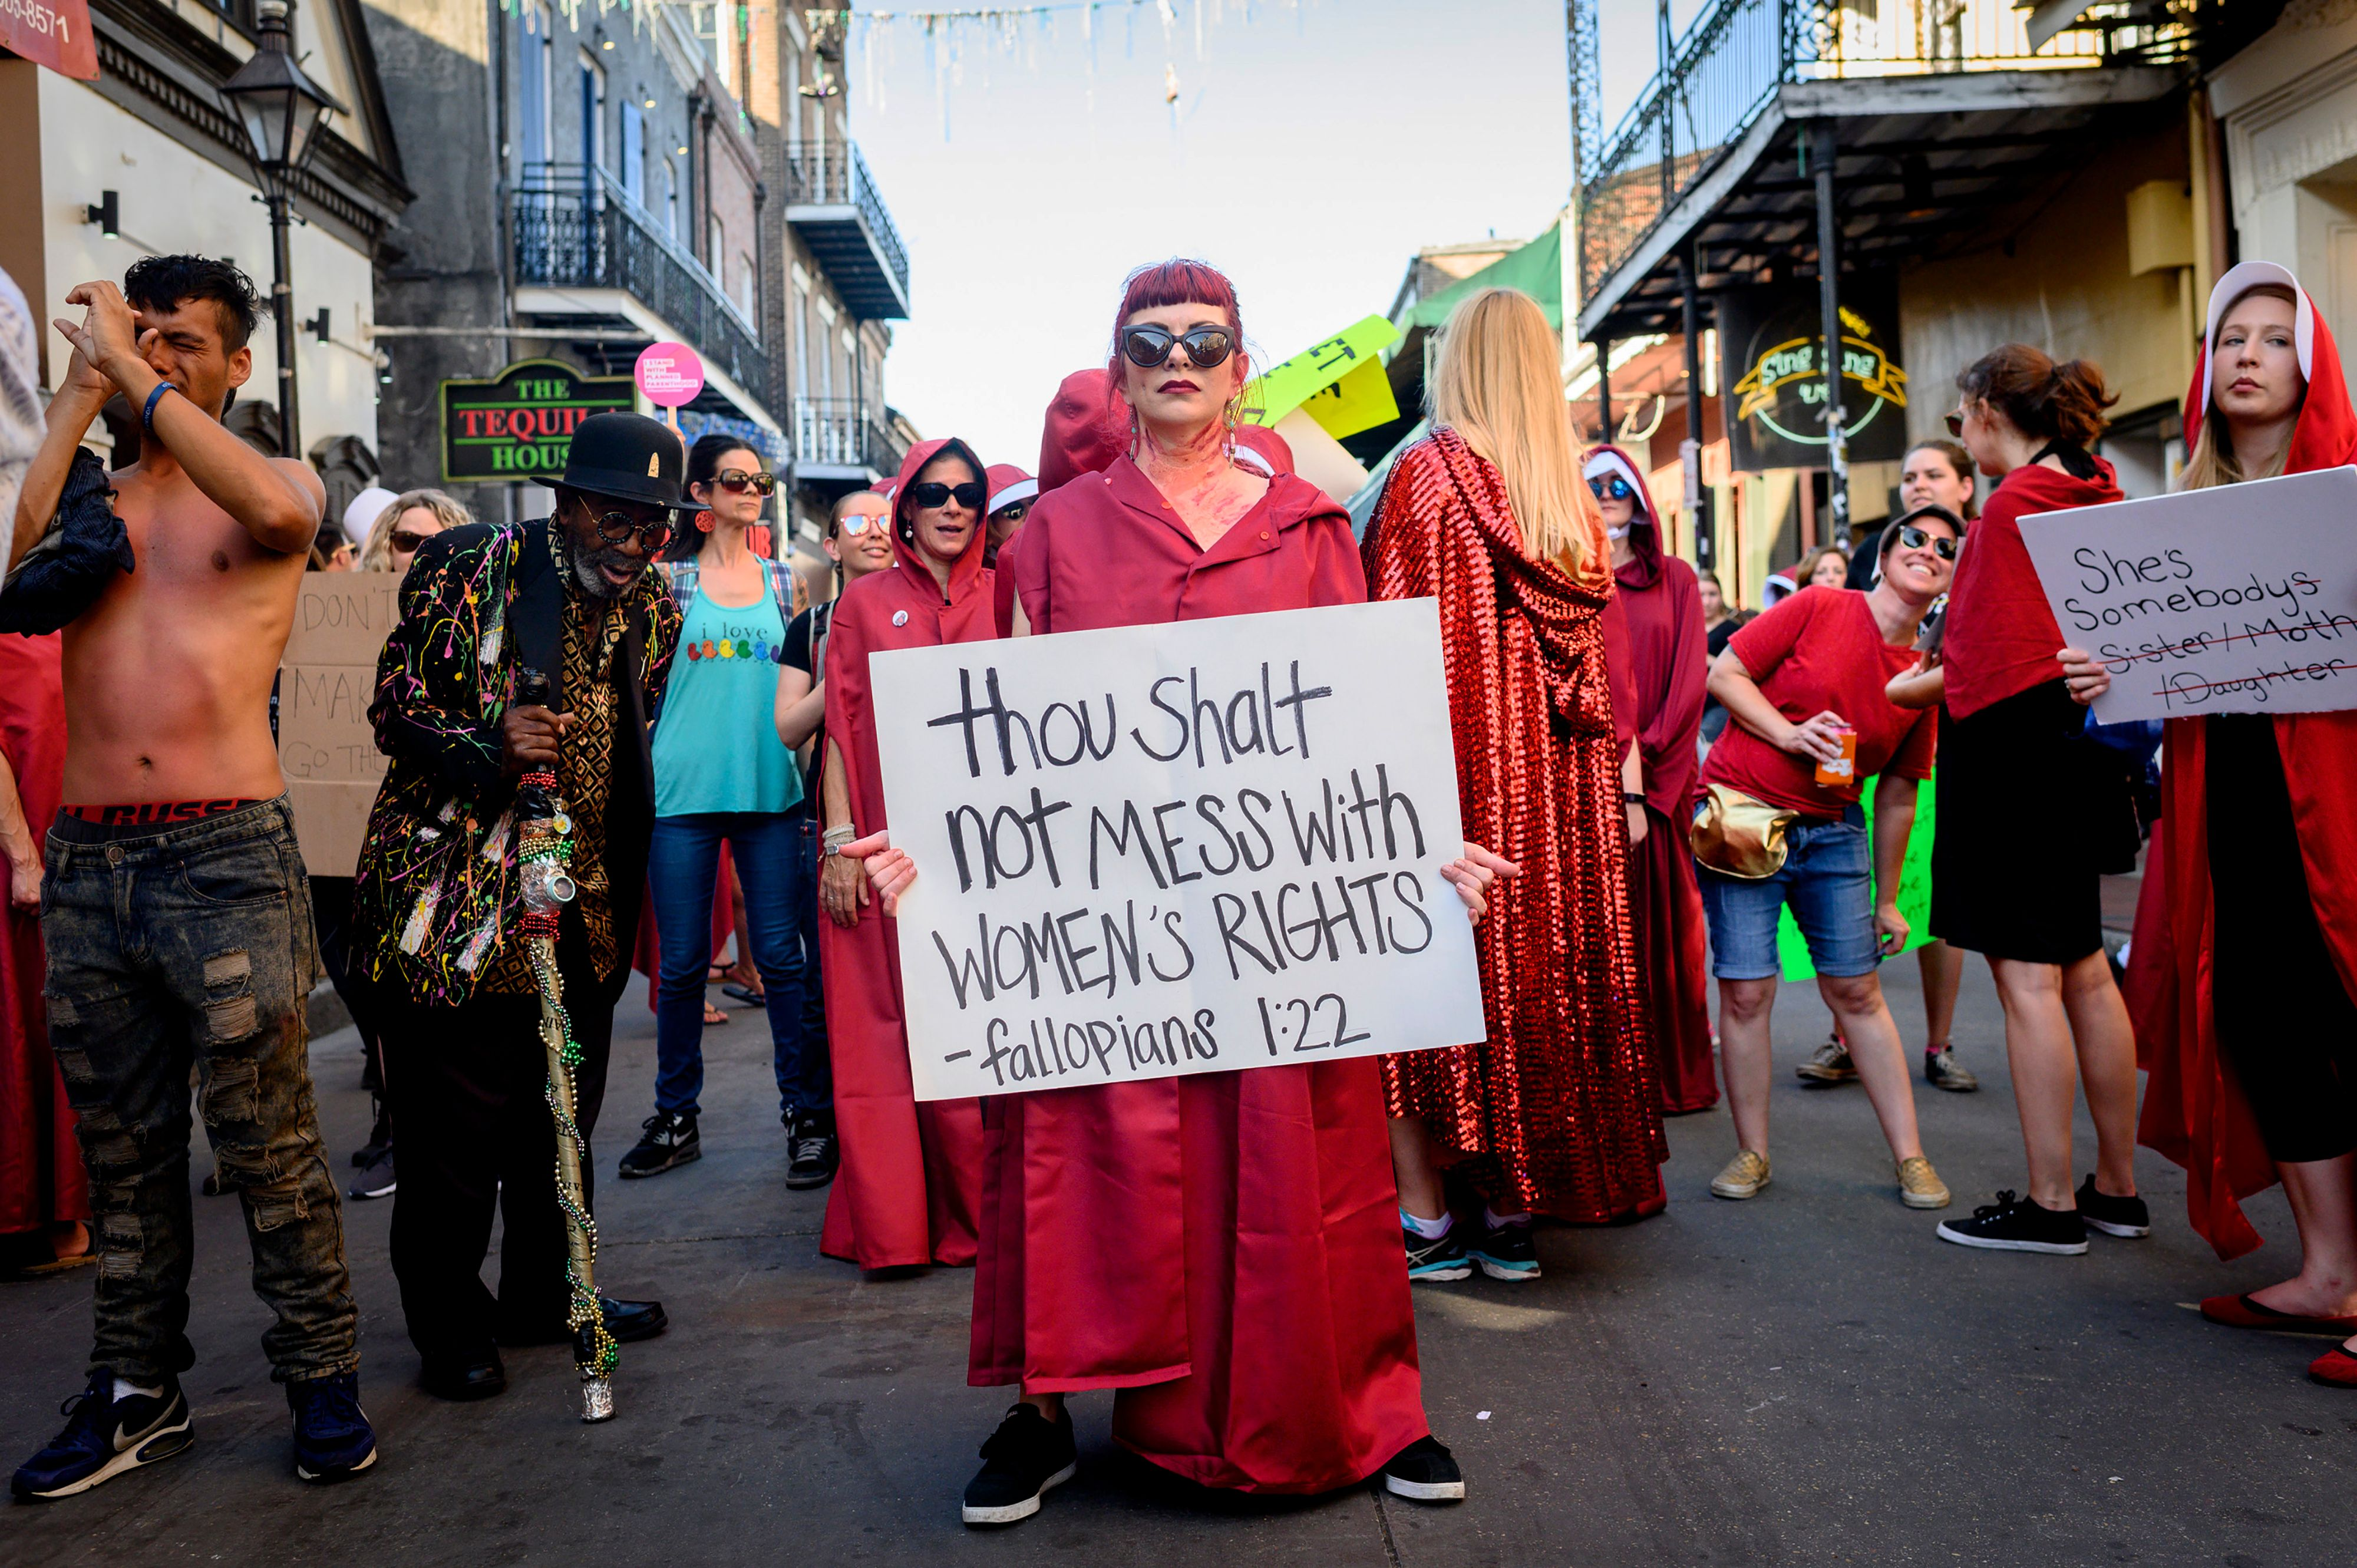 Demonstrators protest a proposed heartbeat bill that will ban abortion after 6 weeks on Bourbon Street in New Orleans, Louisiana, on May 25, 2019. (Emily Kask/AFP/Getty Images)